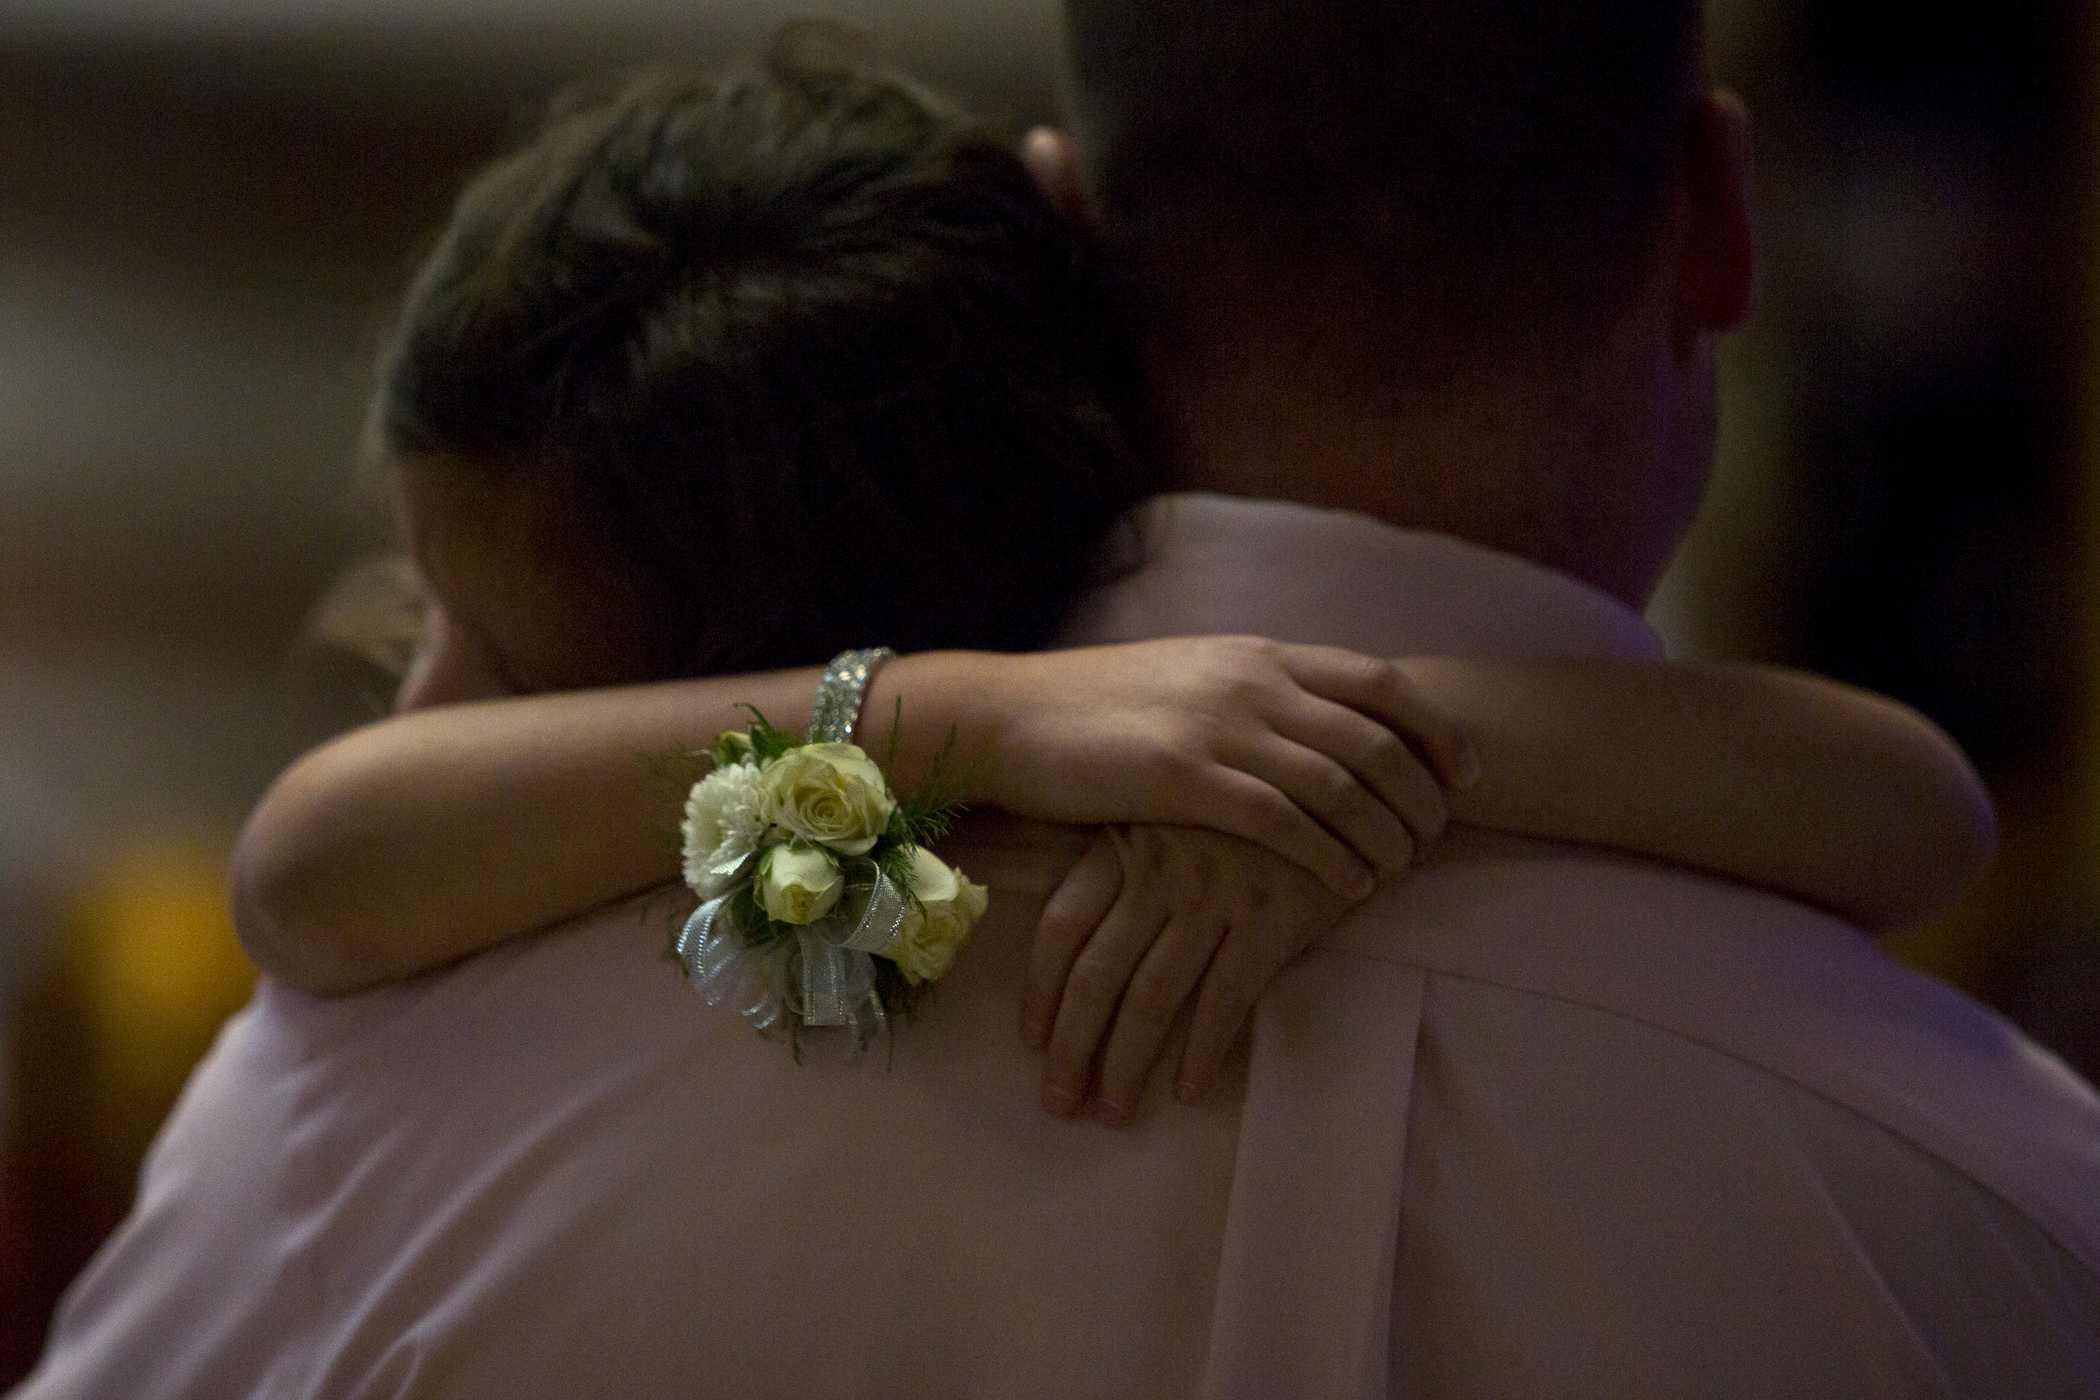 "Julia Pryor of Jasper, 5, rests her head on her father Matt's shoulder while slow dancing at the daddy-daughter dance at Jasper Middle School on January 6, 2018. Julia is the youngest of three daughters, and Matt has brought his other daughters in previous years. ""This is her first [daddy-daughter dance]. She's had to wait patiently, and she finally got dad to herself,"" said Matt."